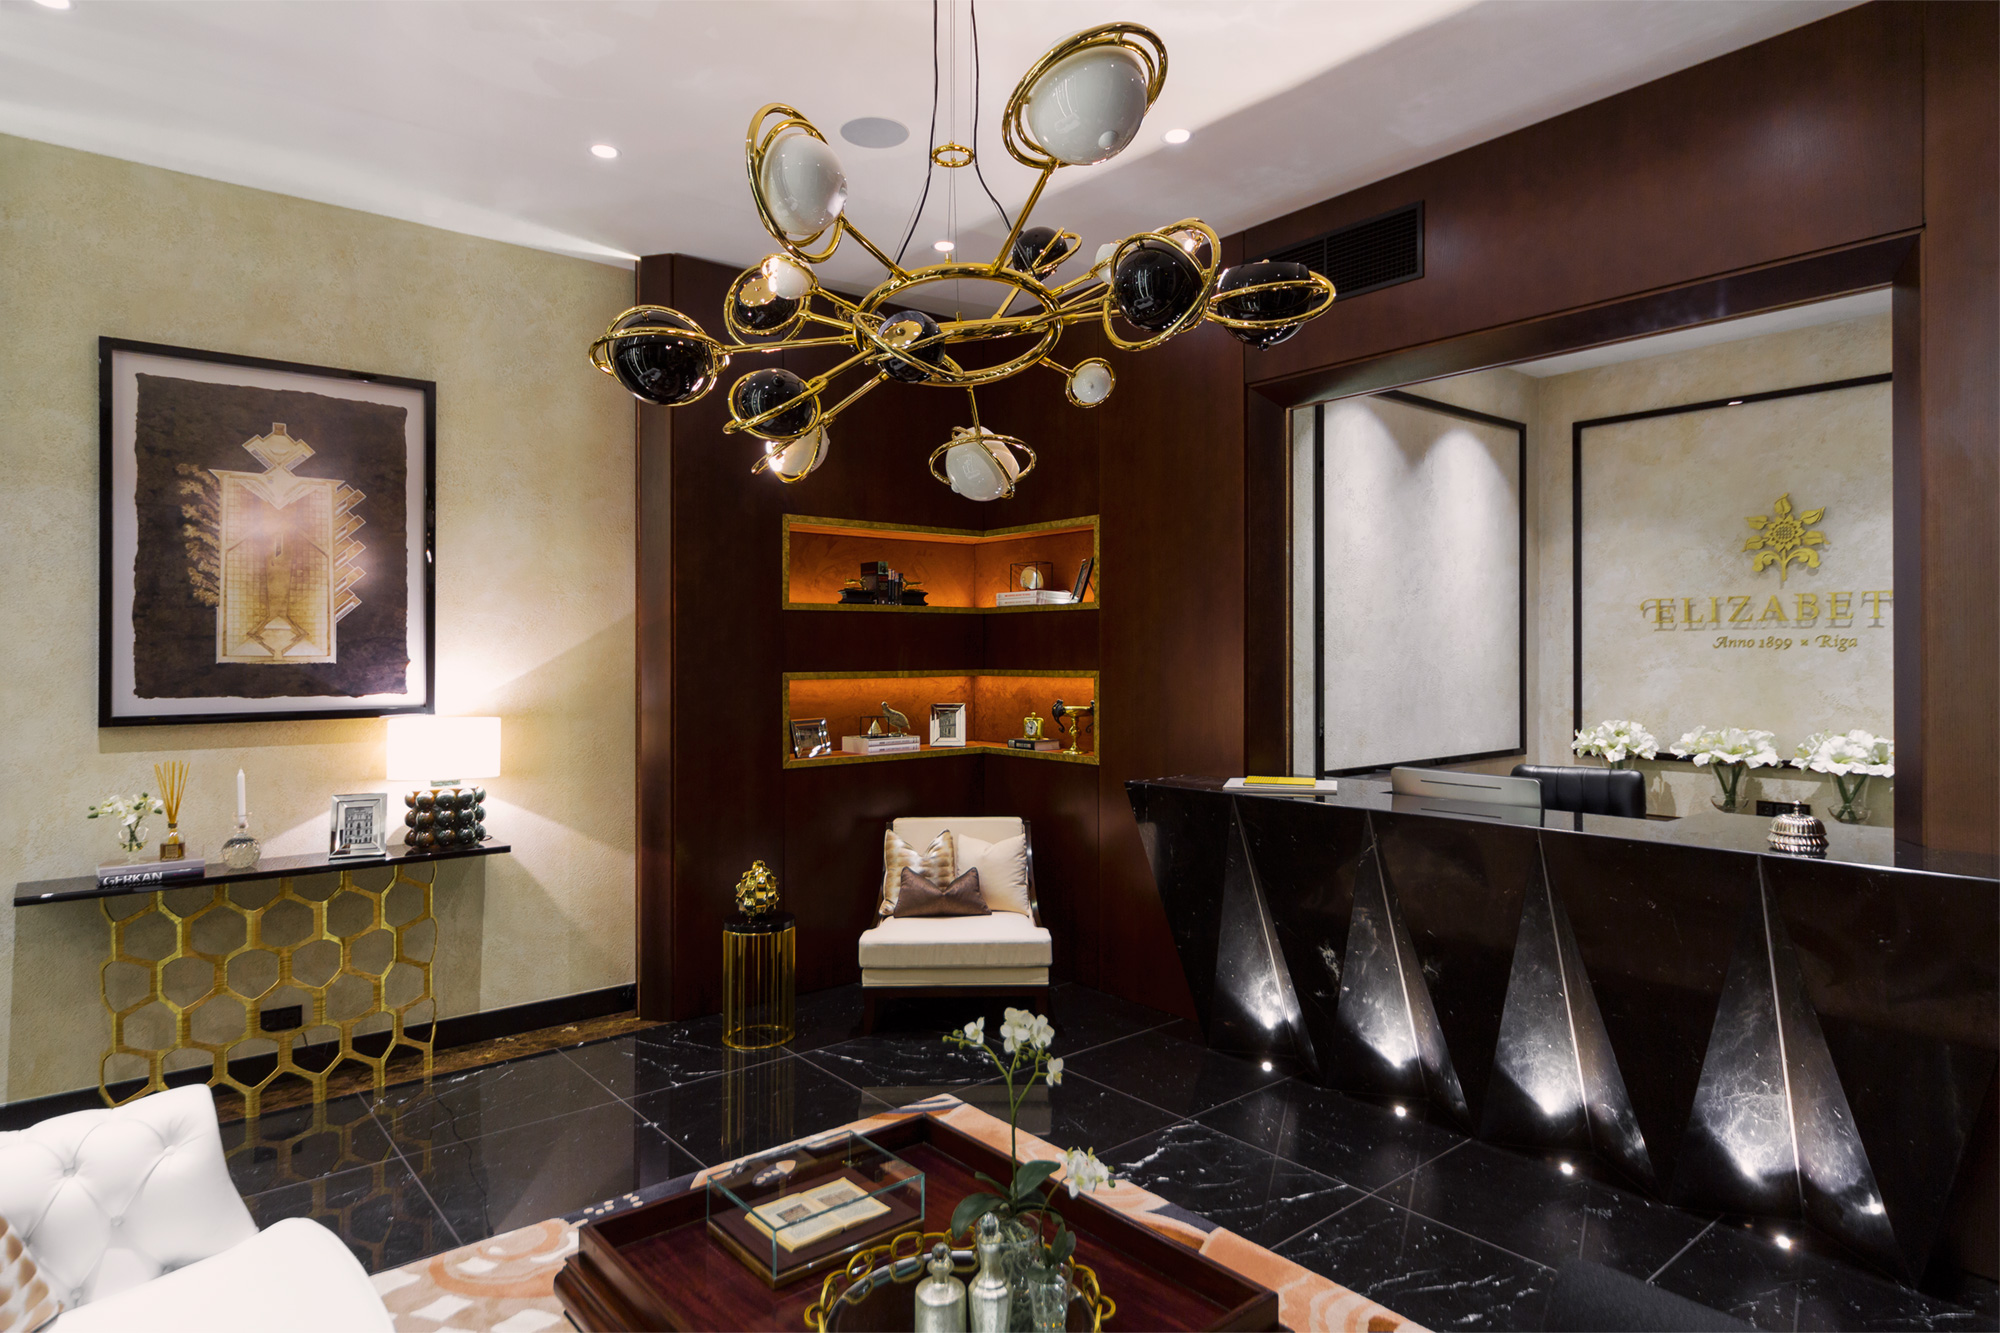 6 Luxury Living Room Ideas with incredible lighting designs